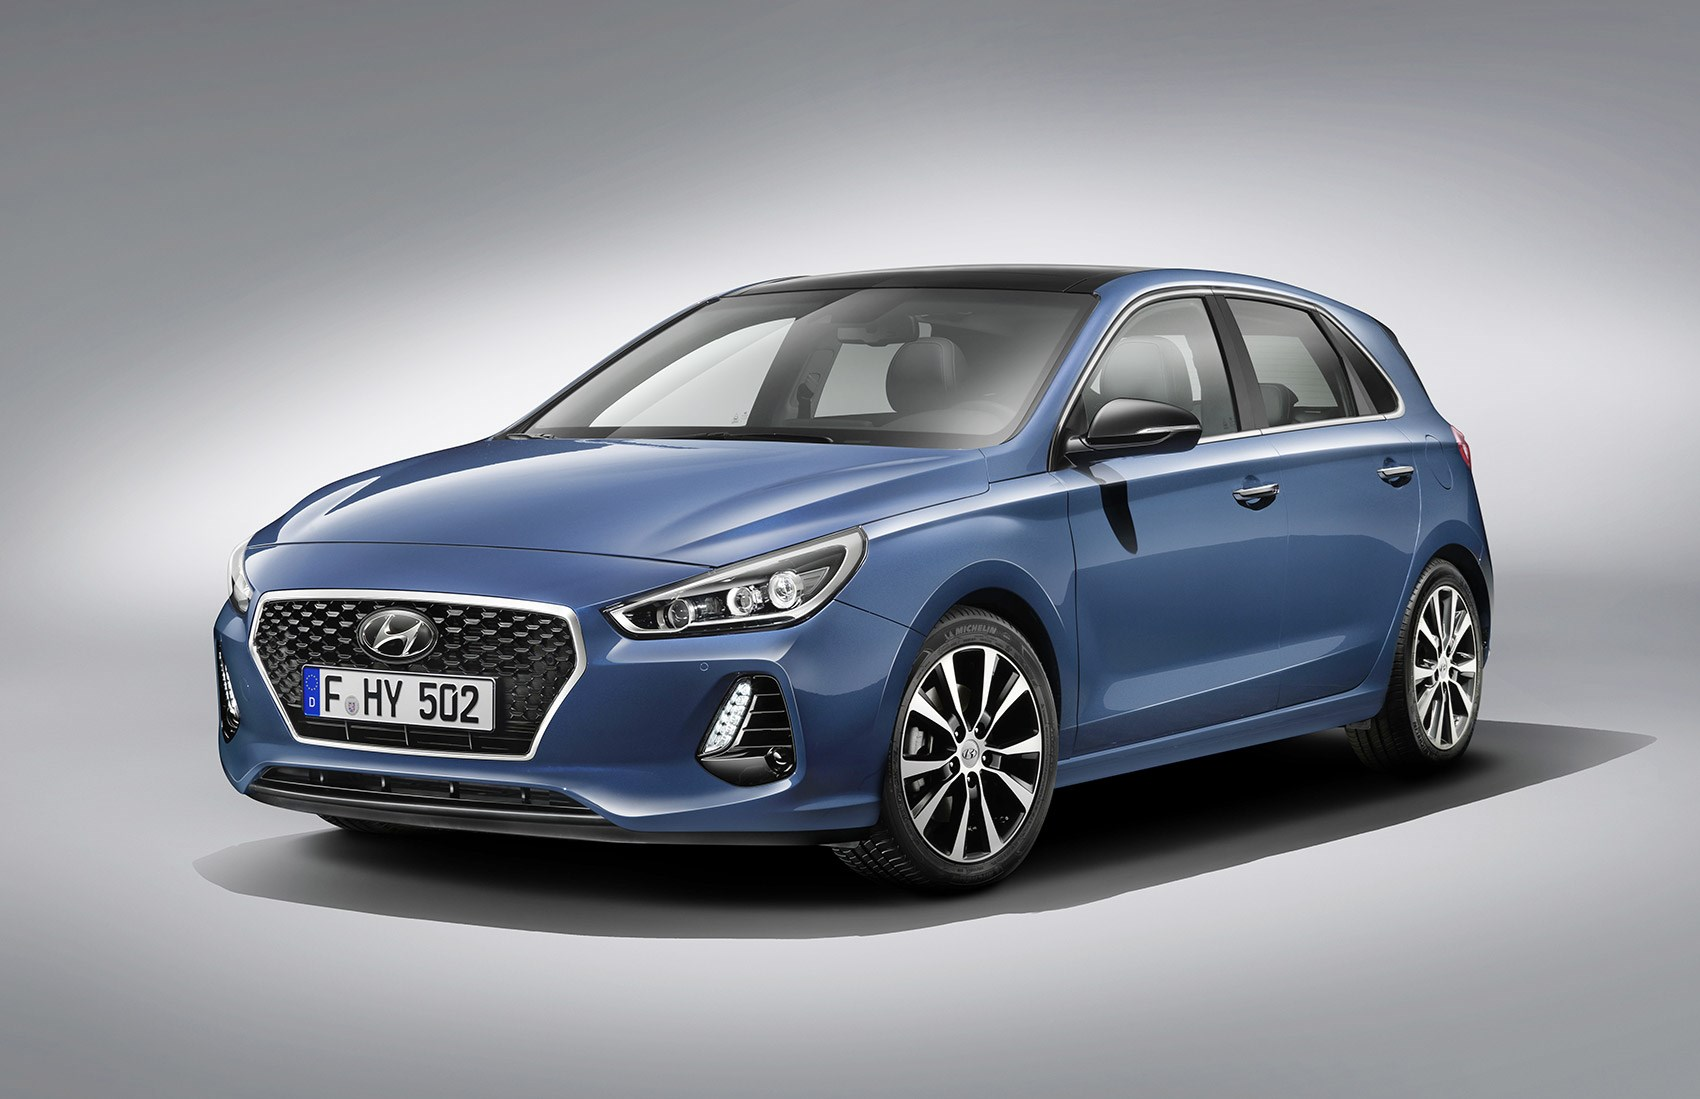 hybrid motoring new future offer cggrdzll zealand of hyundai deals the lease ioniq latest